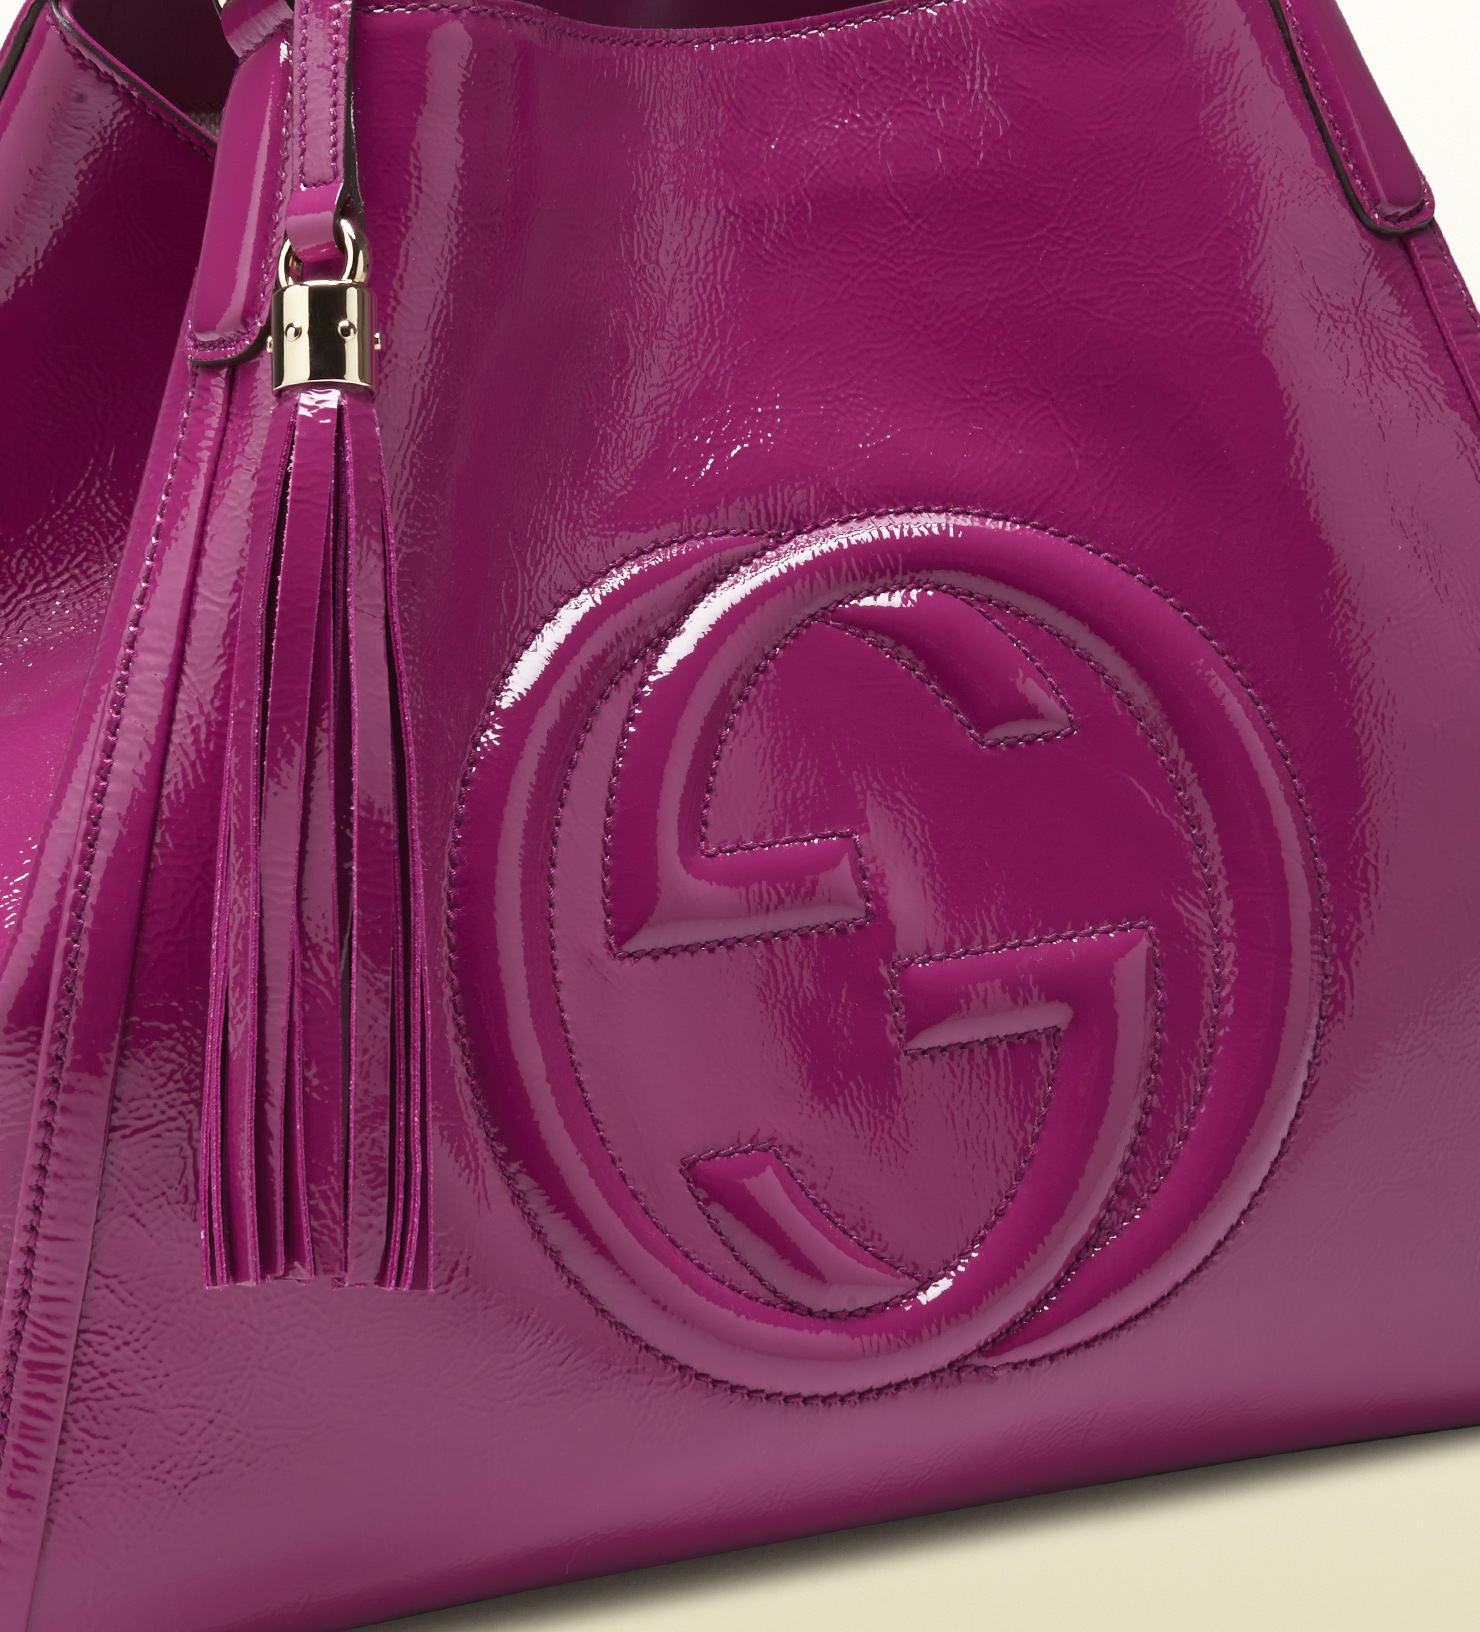 bacfd92f7bf9 Gallery. Women s Gucci Soho Bag Women s Mulberry Seaton Women s Black  Patent Leather Handbags ...